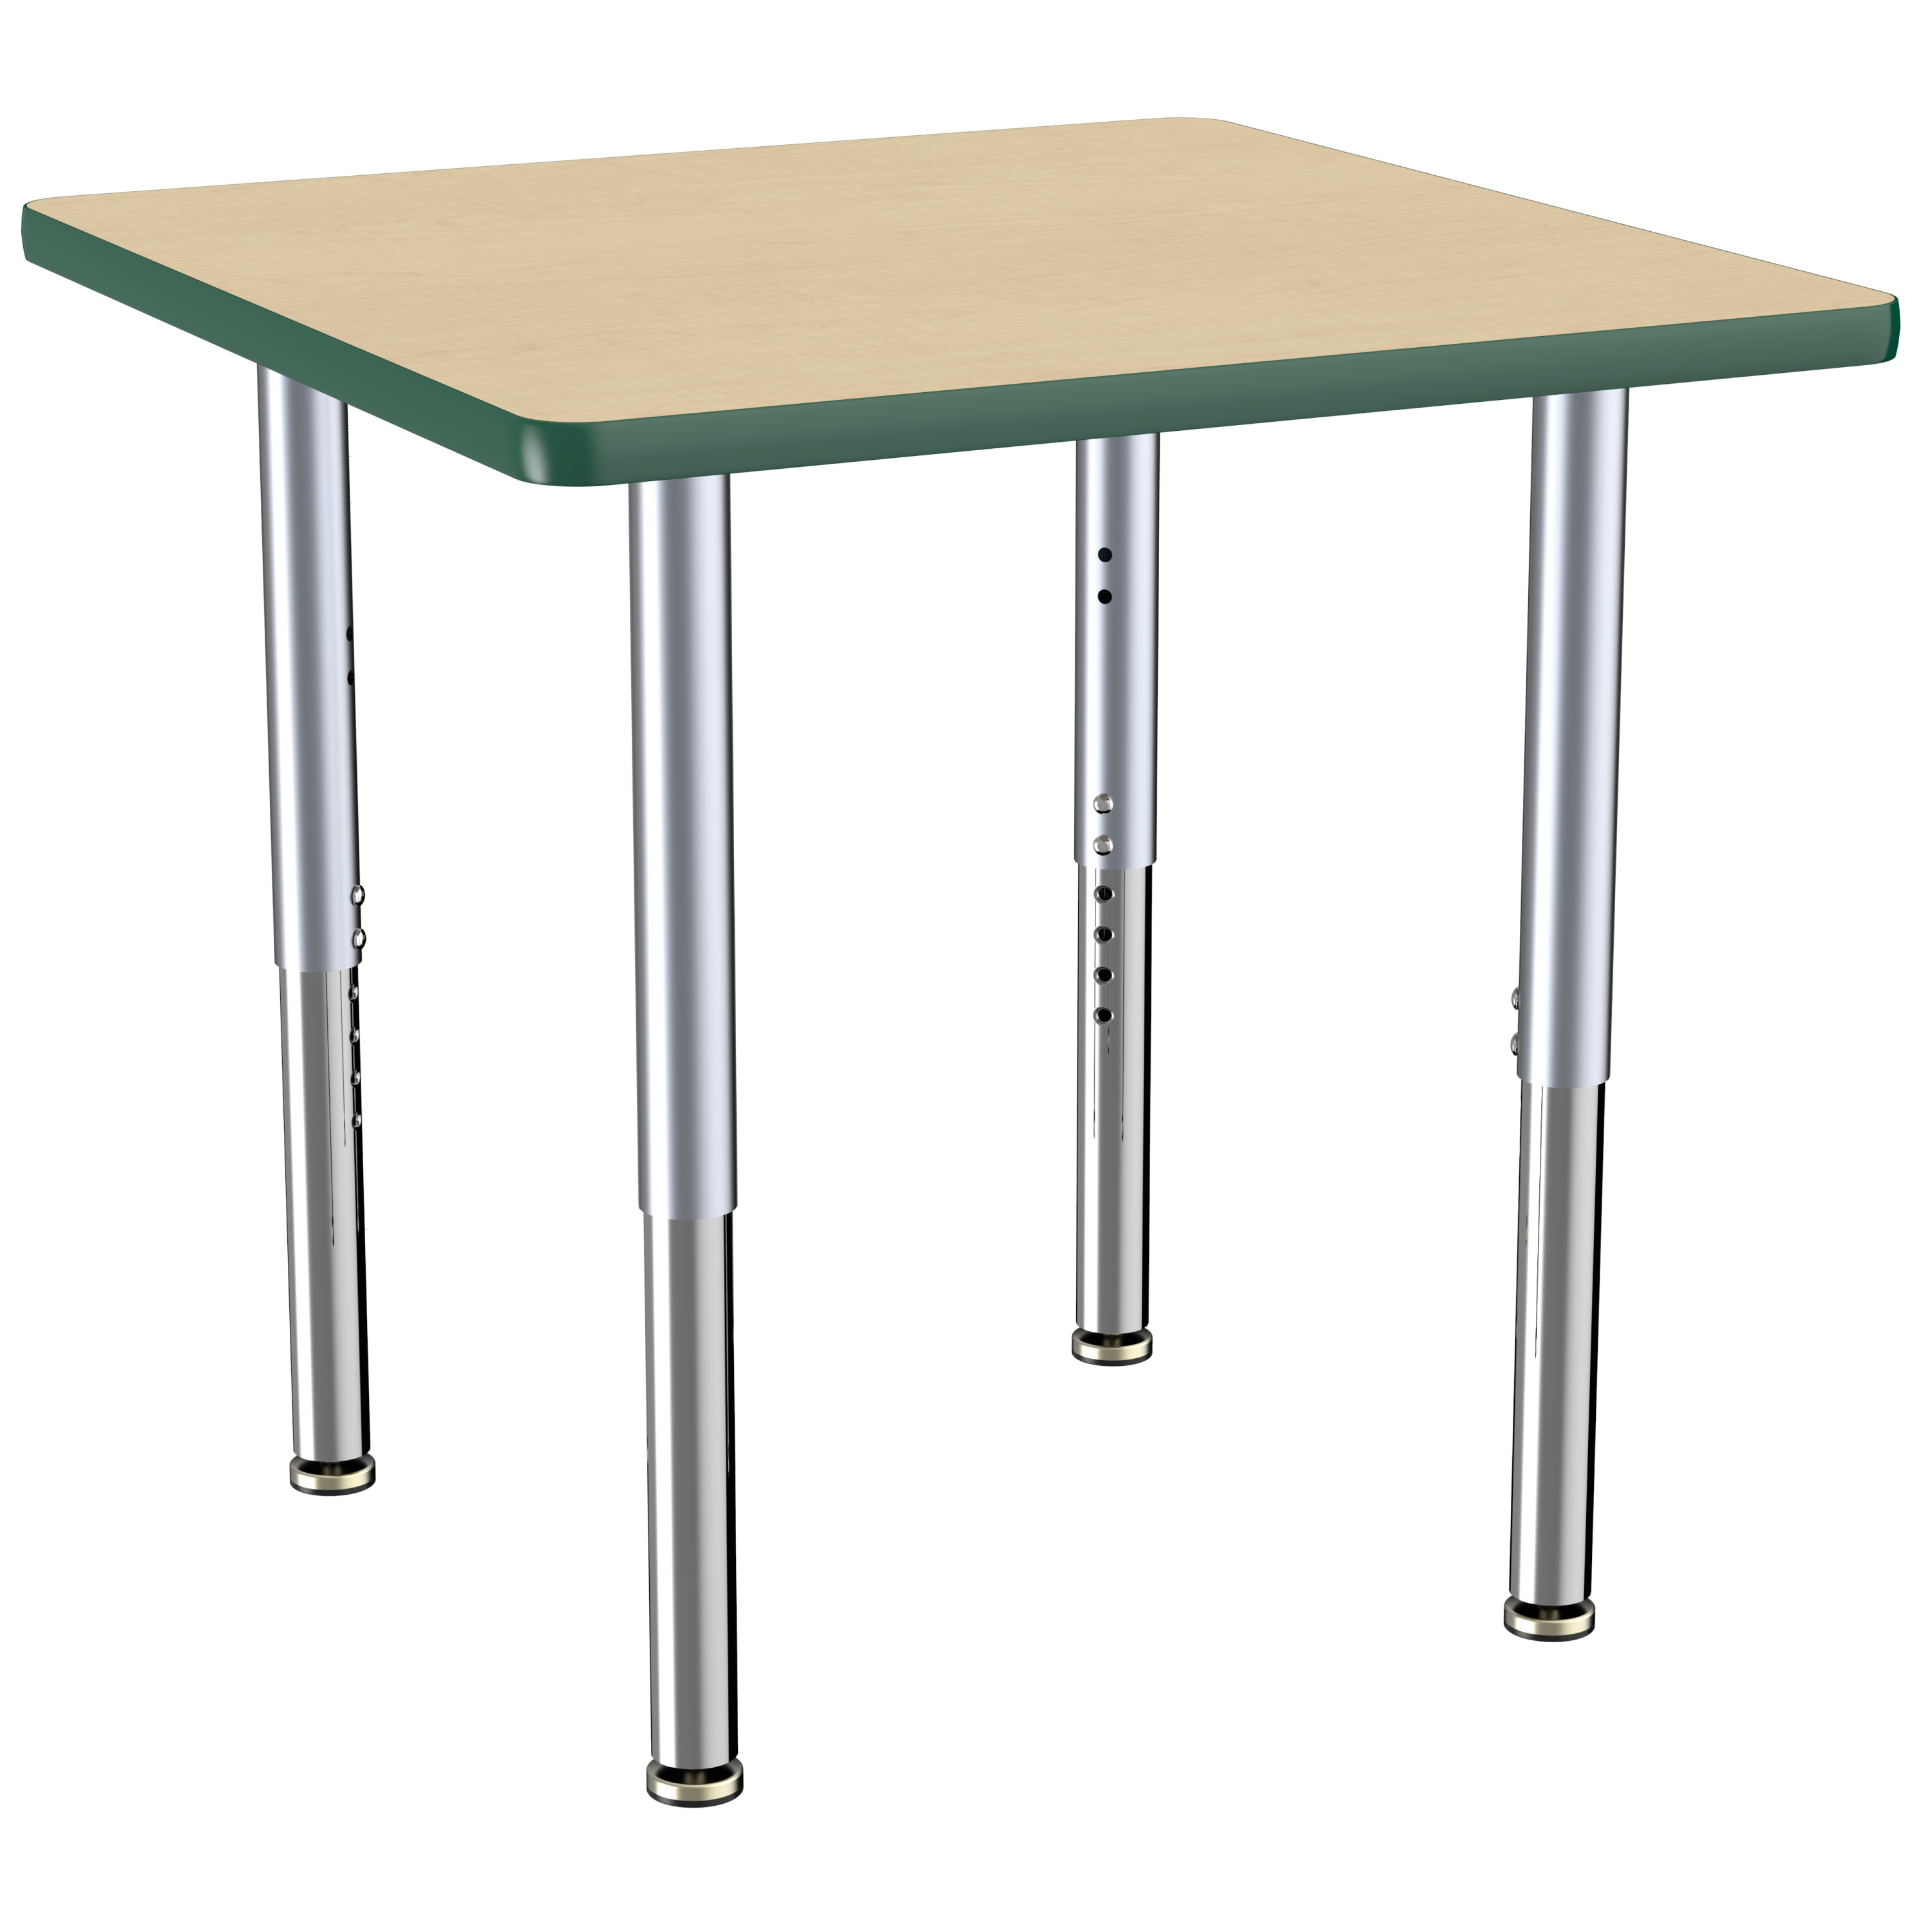 ECR4Kids 30in x 30in Square Everyday T-Mold Adjustable Activity Table Maple/Green/Silver - Super Leg